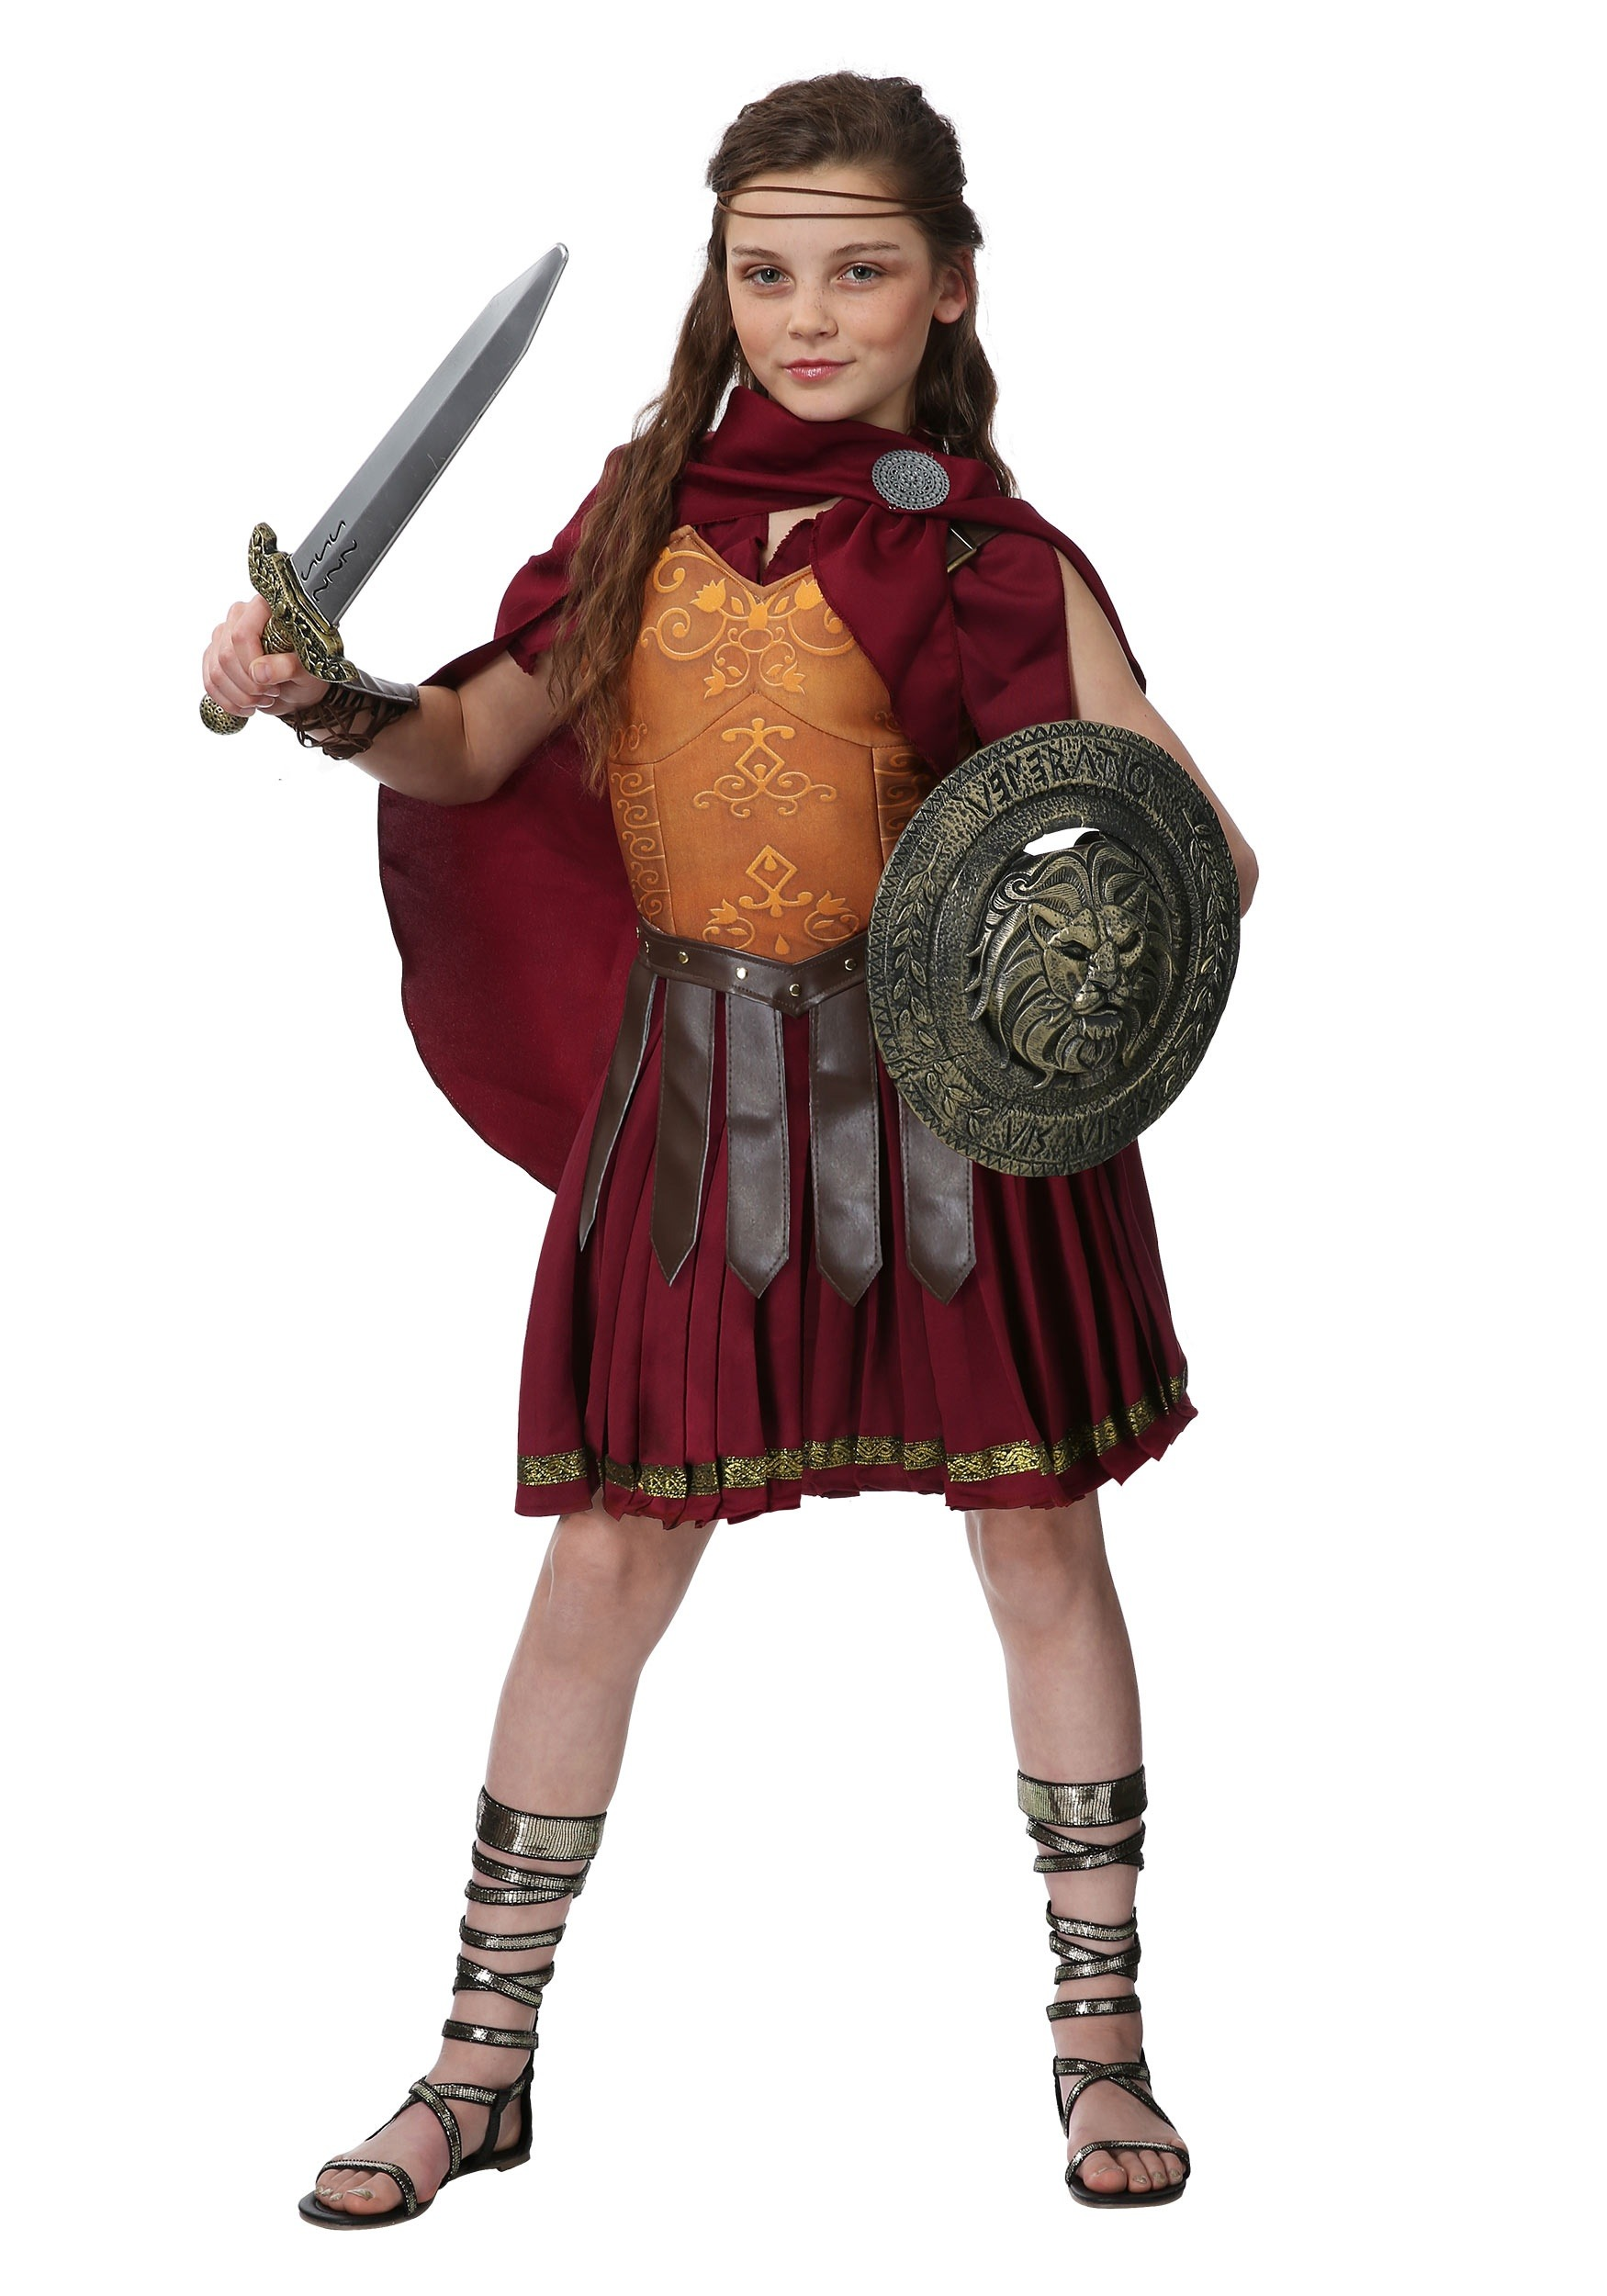 Pictures of gladiators for kids Cached